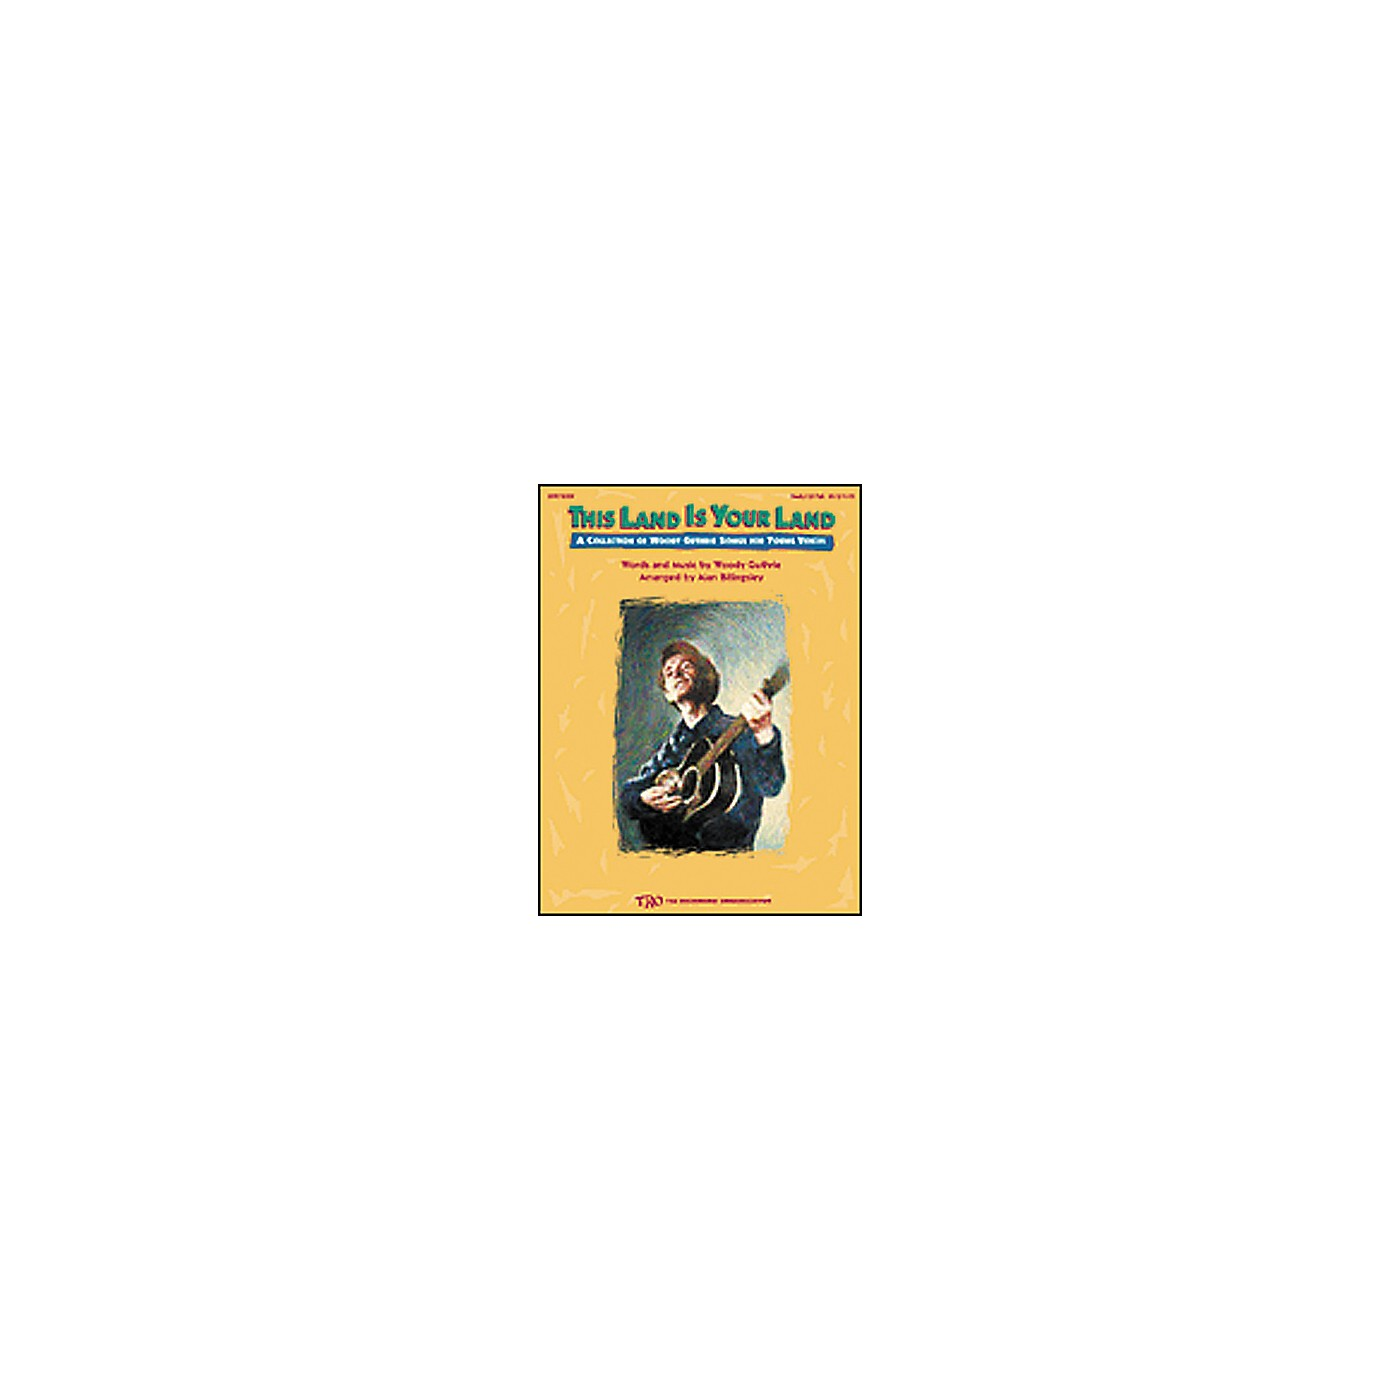 Hal Leonard This Land is Your Land-A Collection of Woodie Guthrie Songs singer's 5-Pack thumbnail